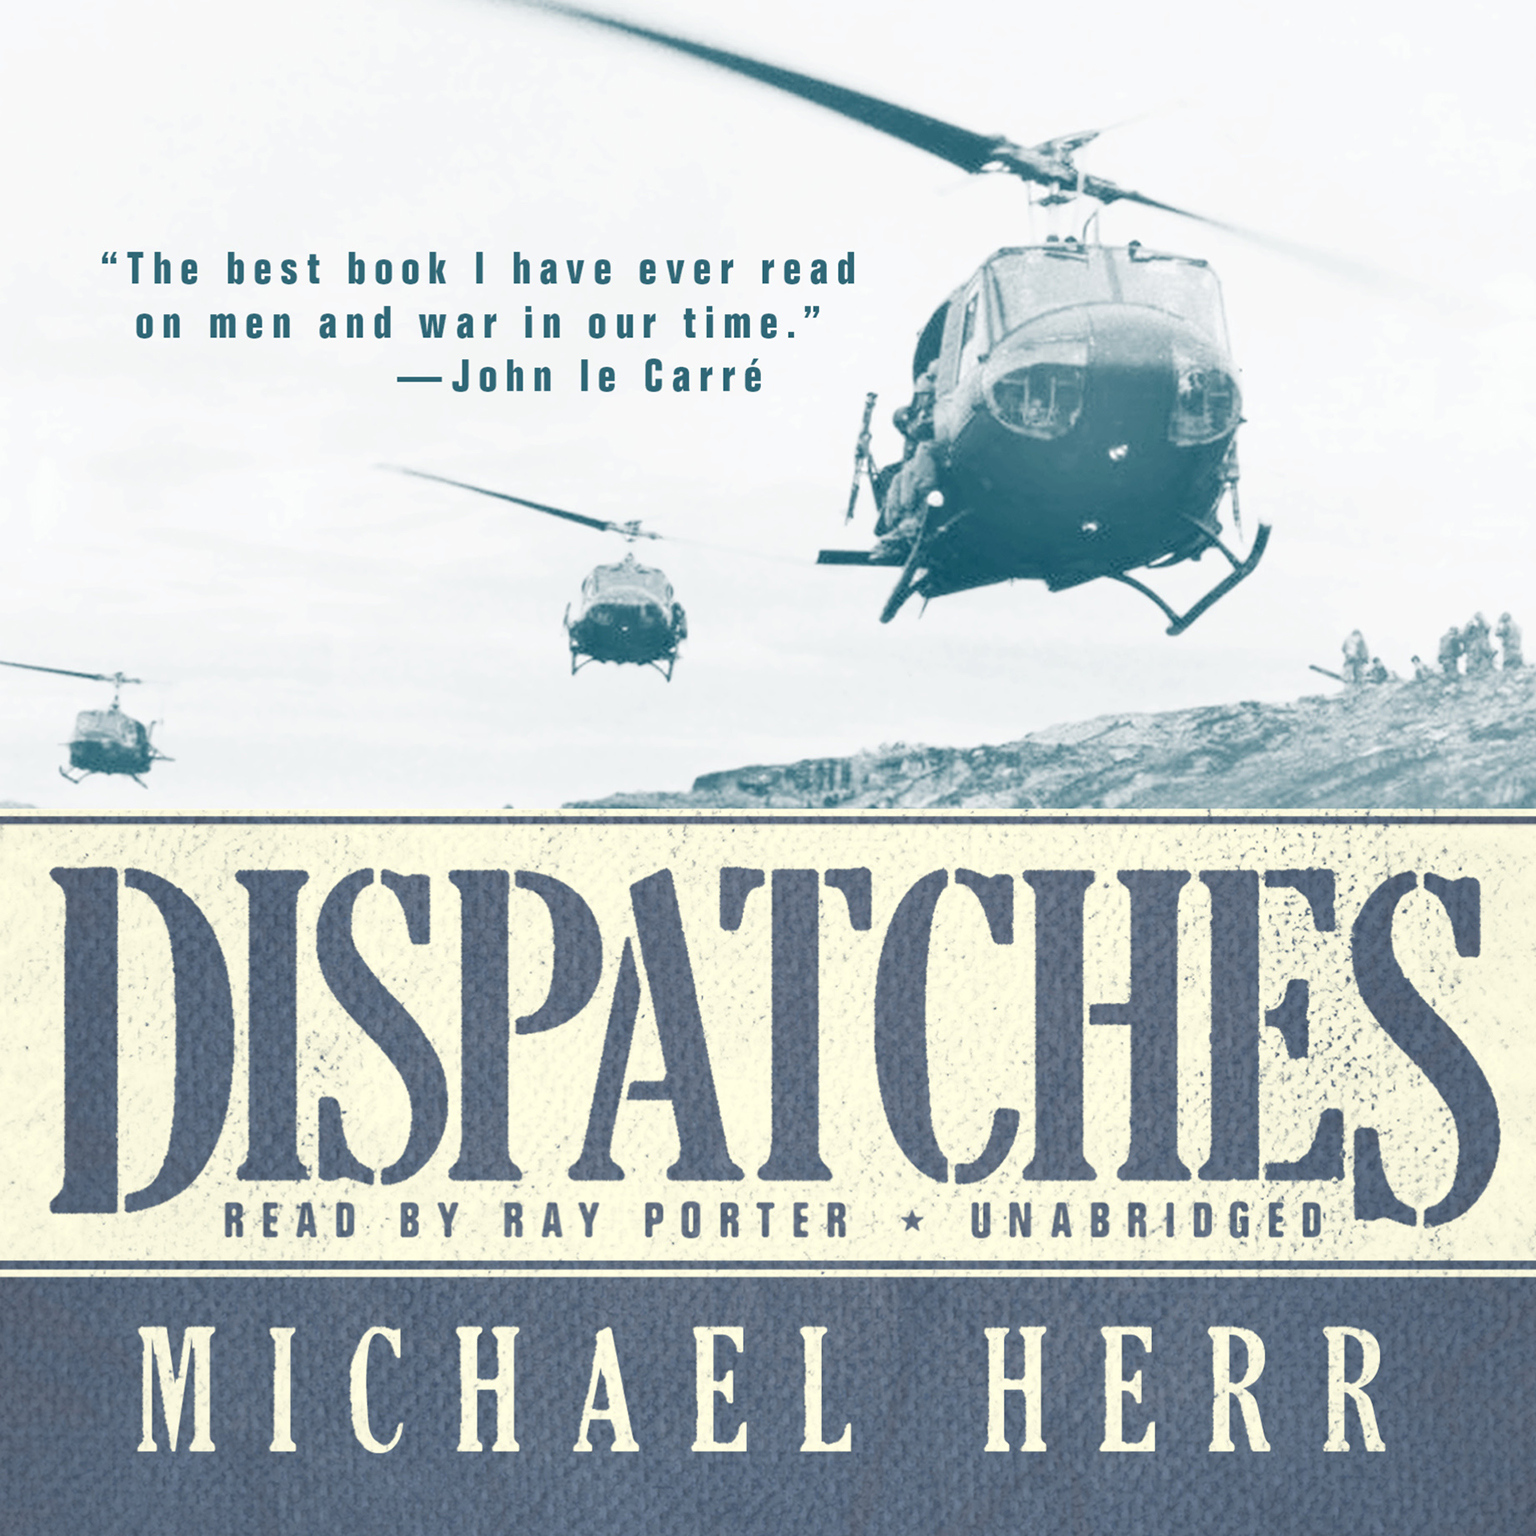 Printable Dispatches Audiobook Cover Art